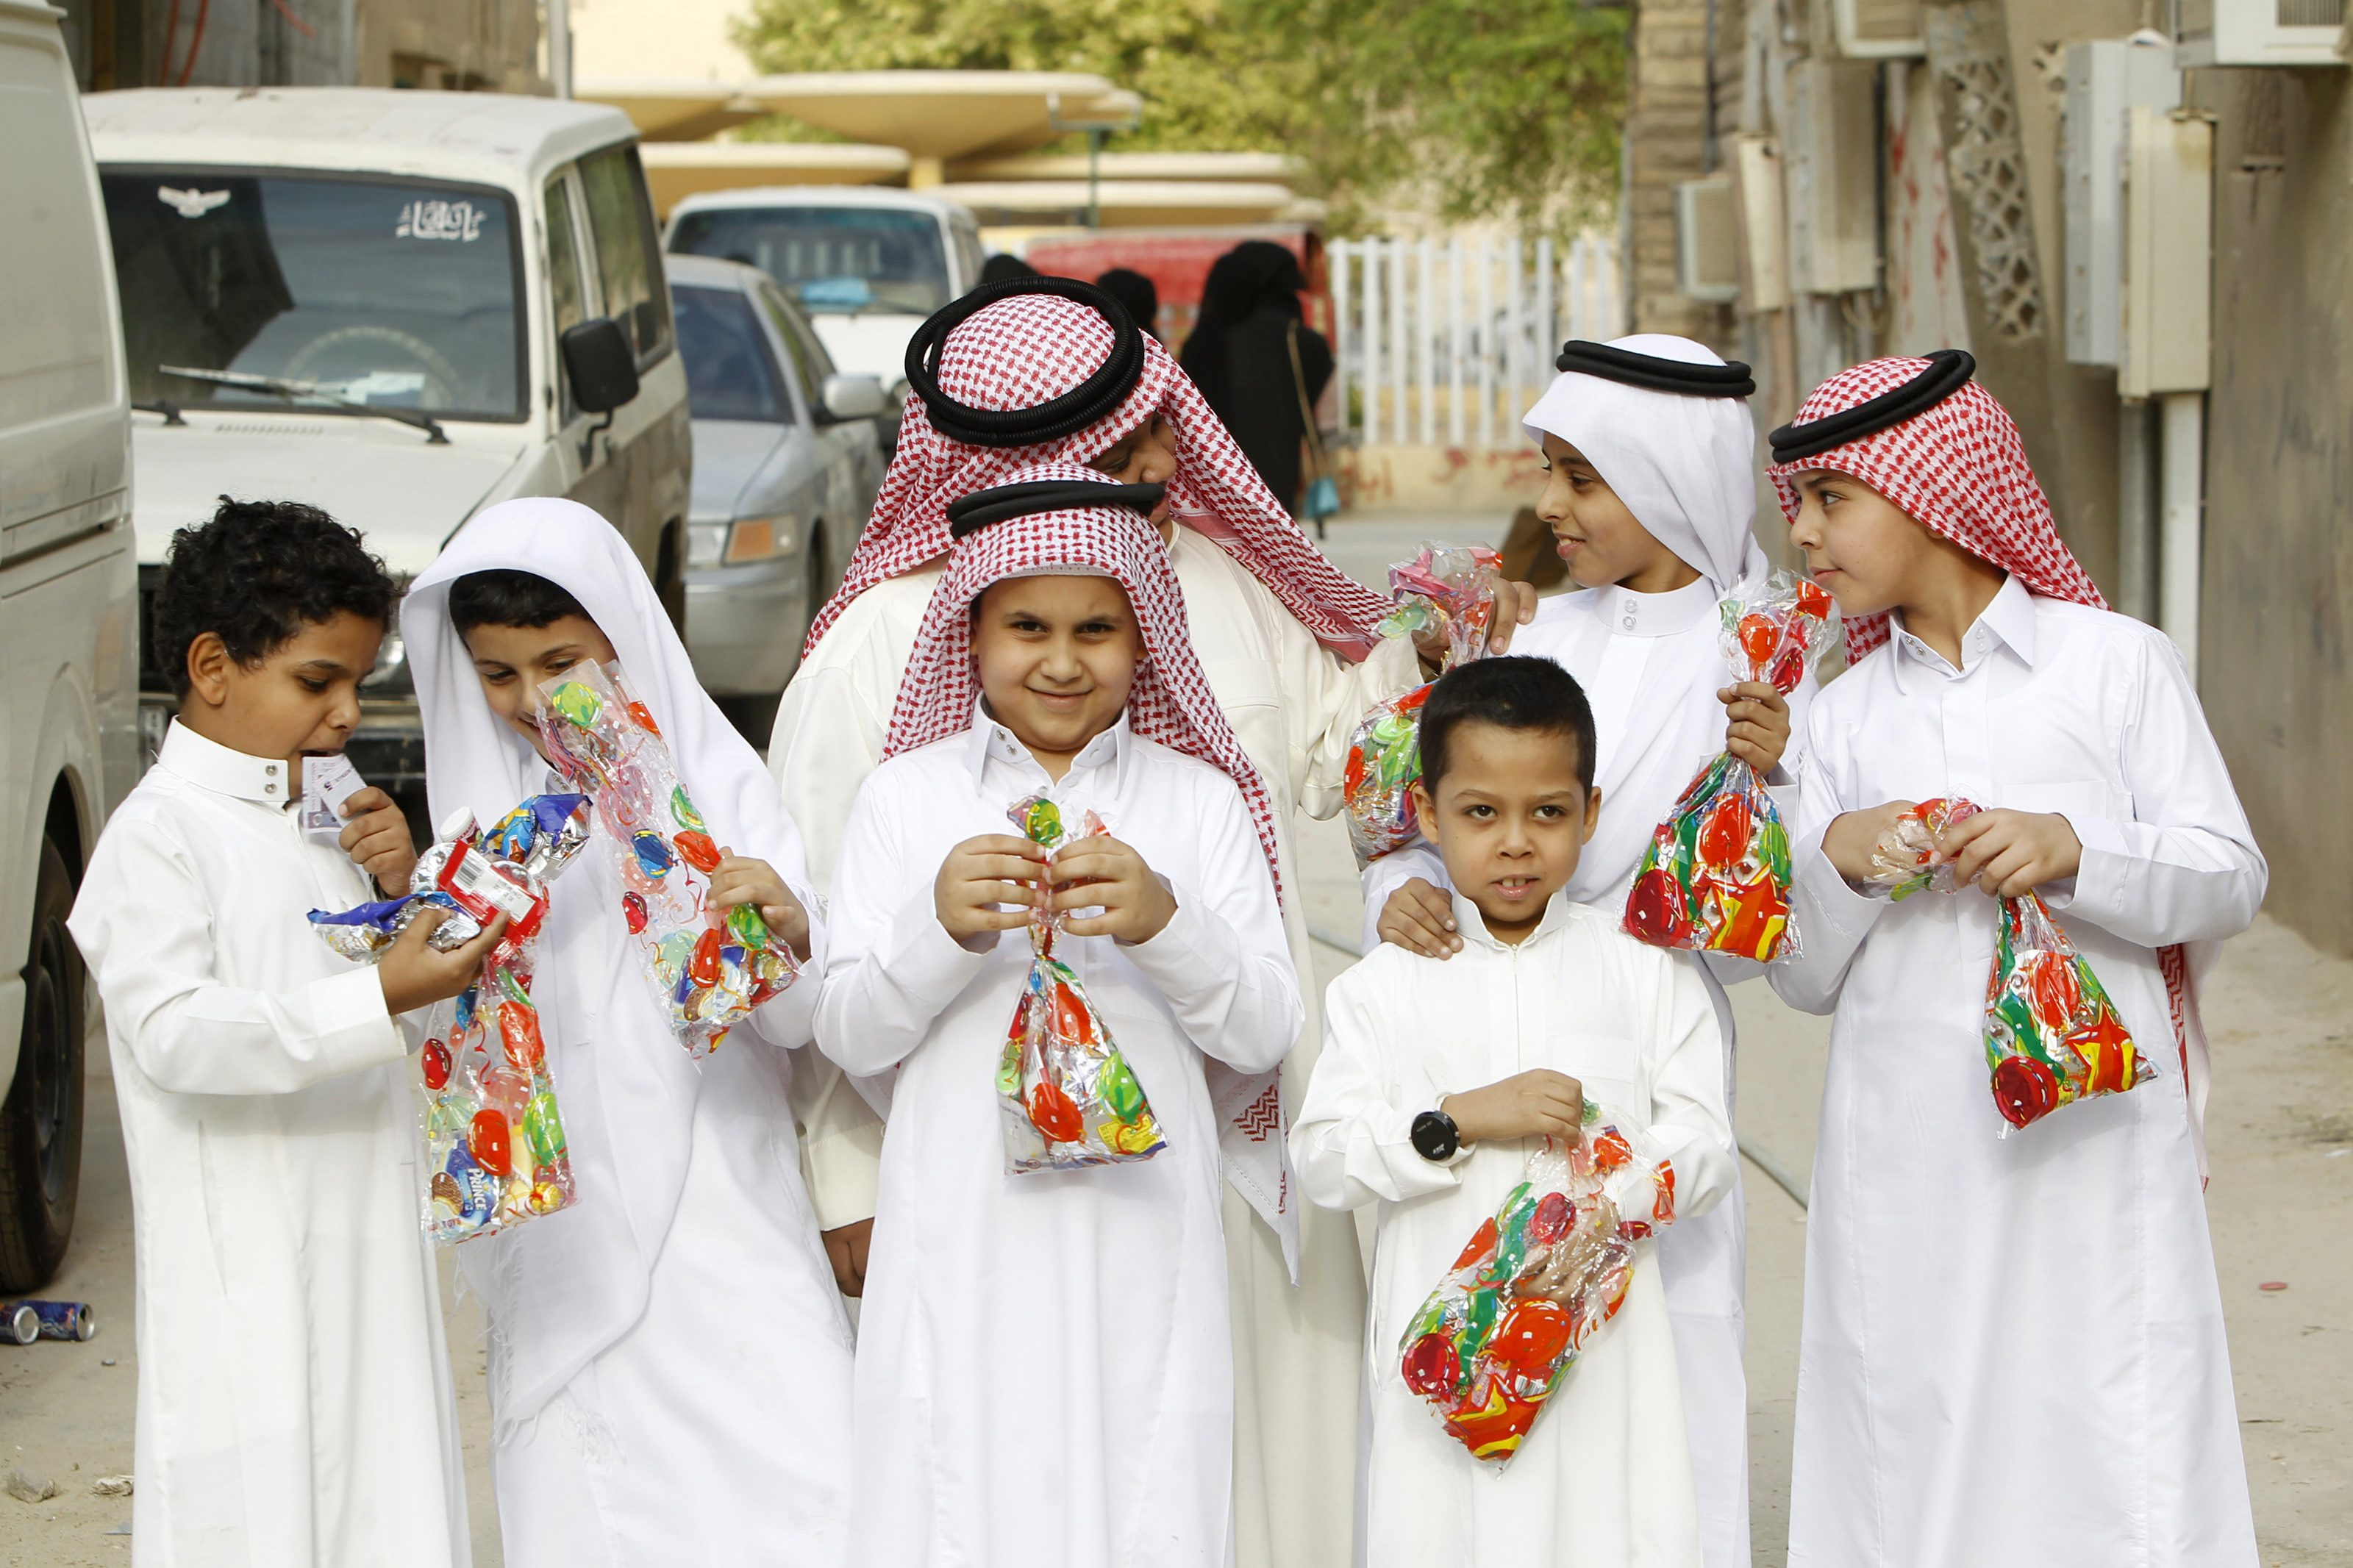 Beautiful Saudi Arabia Eid Al-Fitr Food - kids  Pic_74276 .jpg